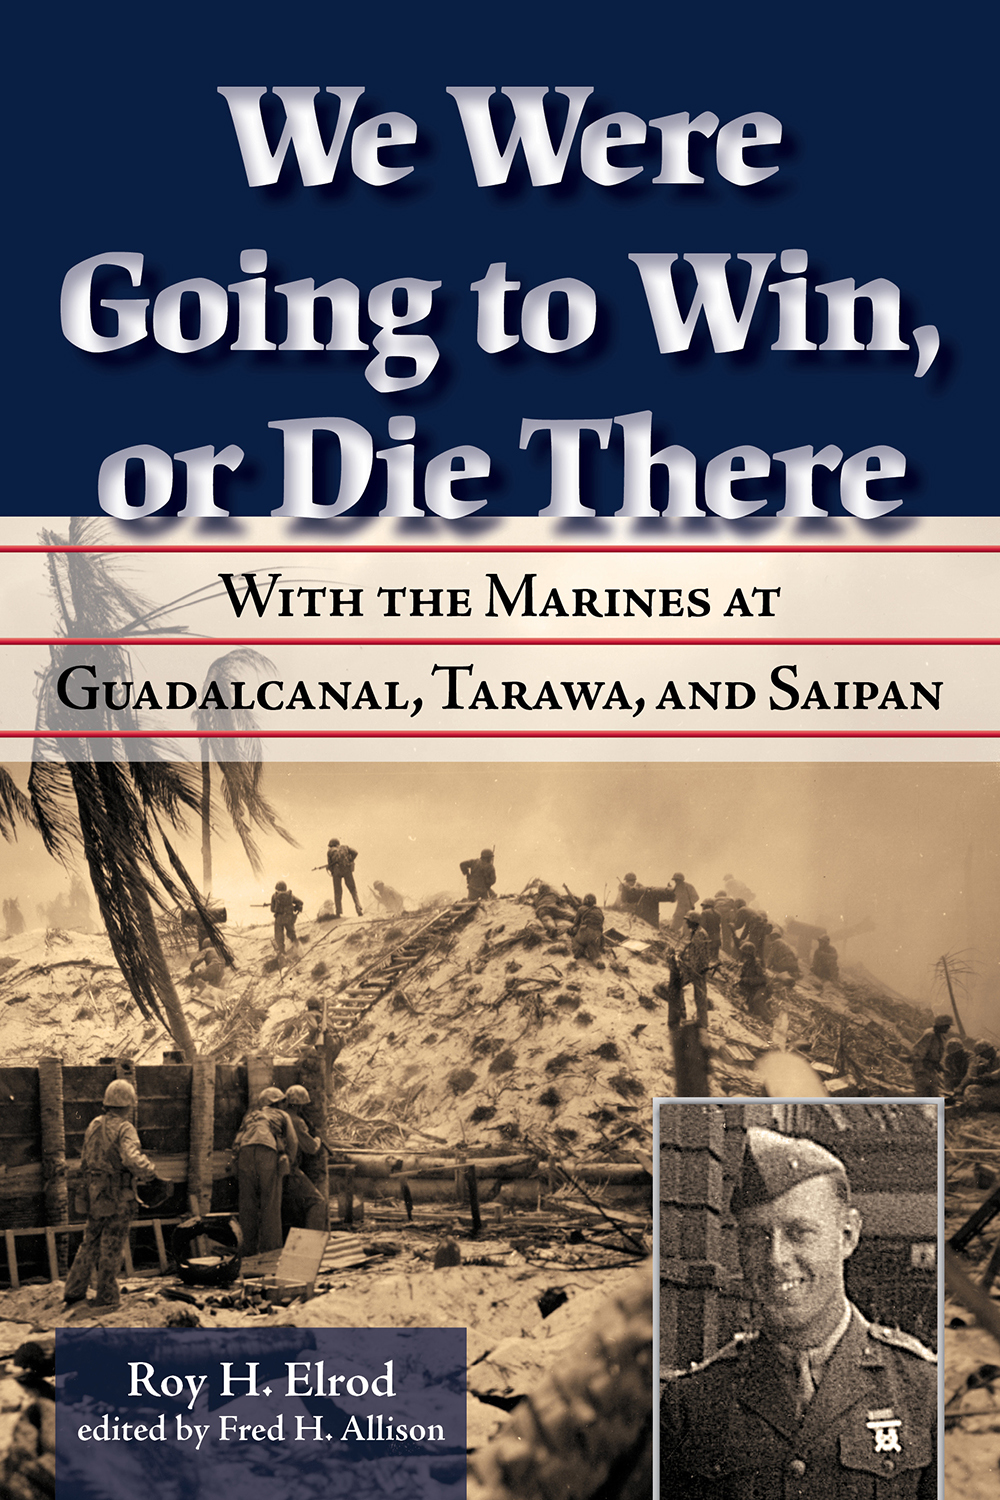 We Were Going to Win, Or Die There With the Marines at Guadalcanal, Tarawa, and Saipan